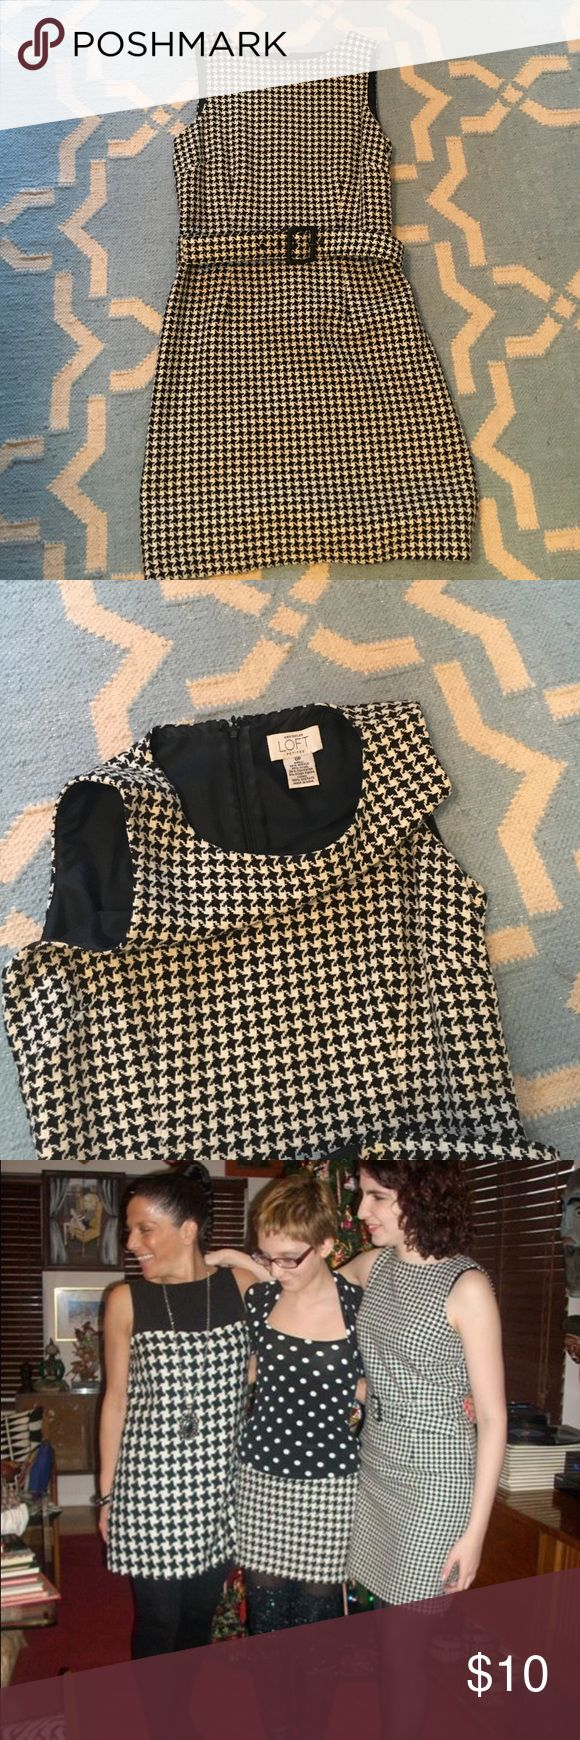 Houndstooth dress Houndstooth dress, perfect for the office. LOFT Dresses Mini